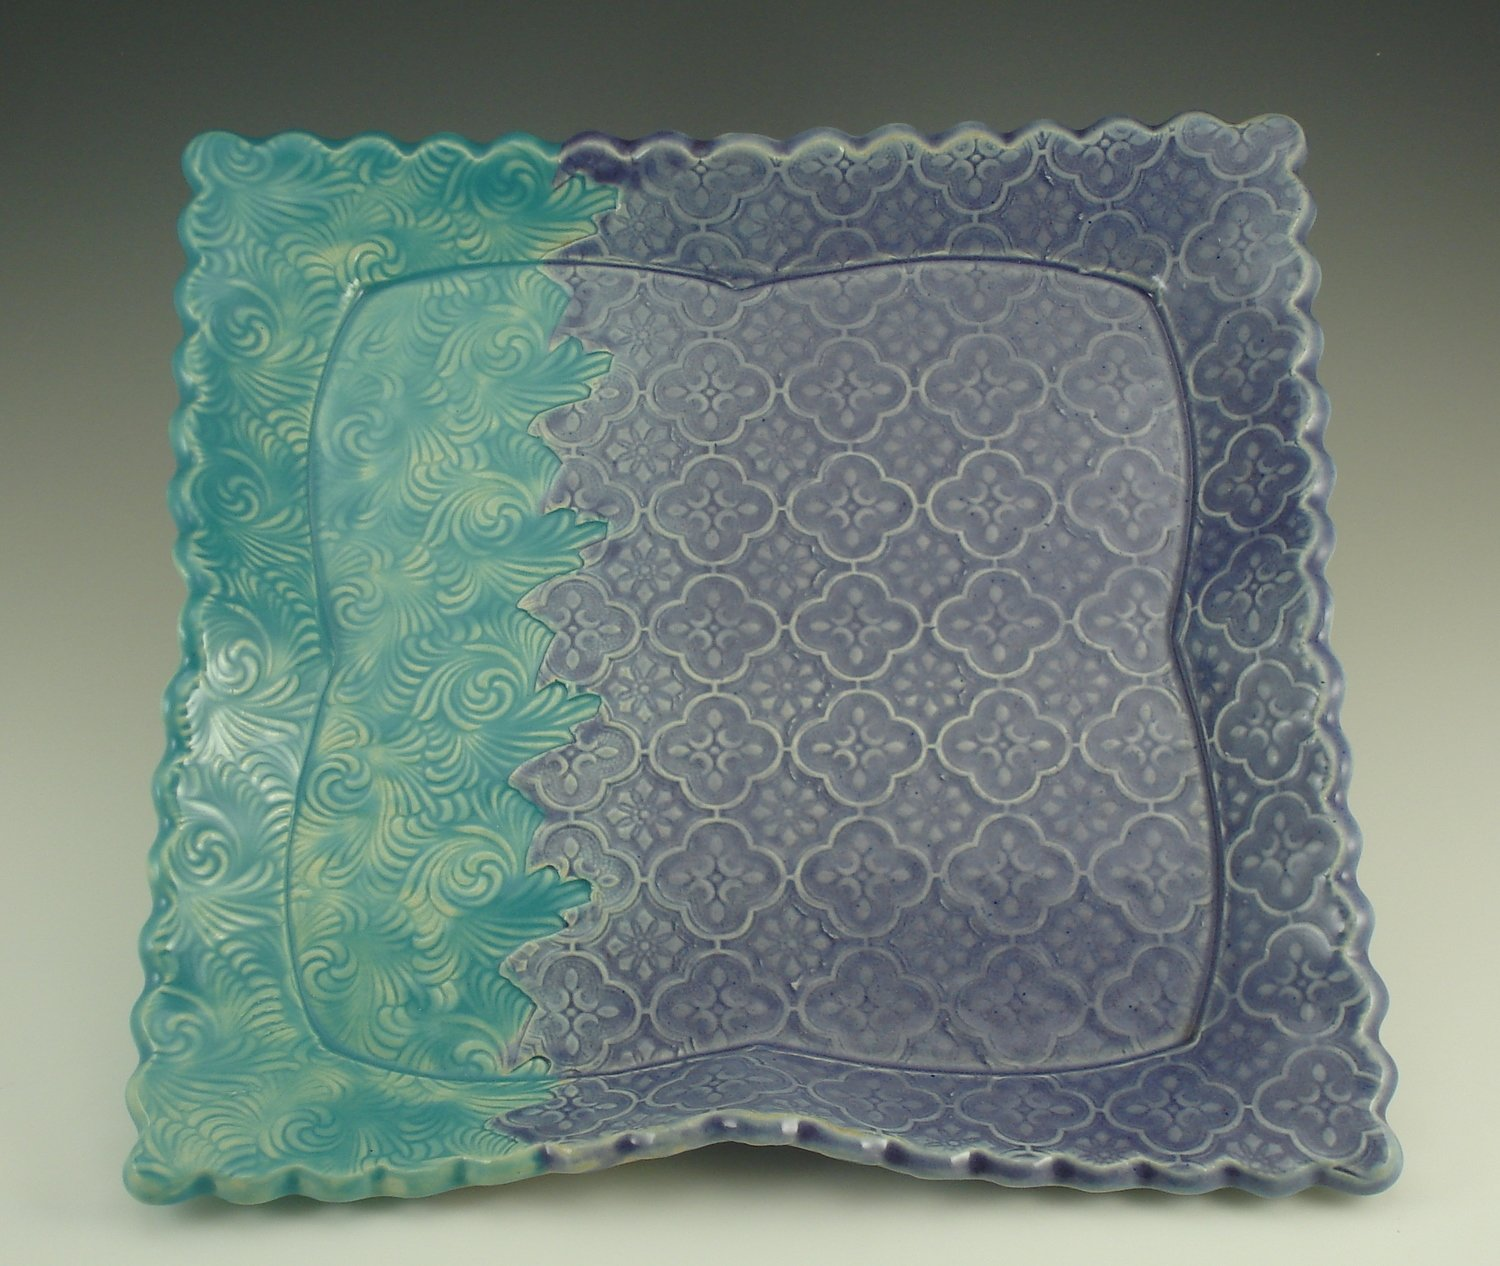 "10.5"" x 10.5"" Square Platter in turquoise & purple"